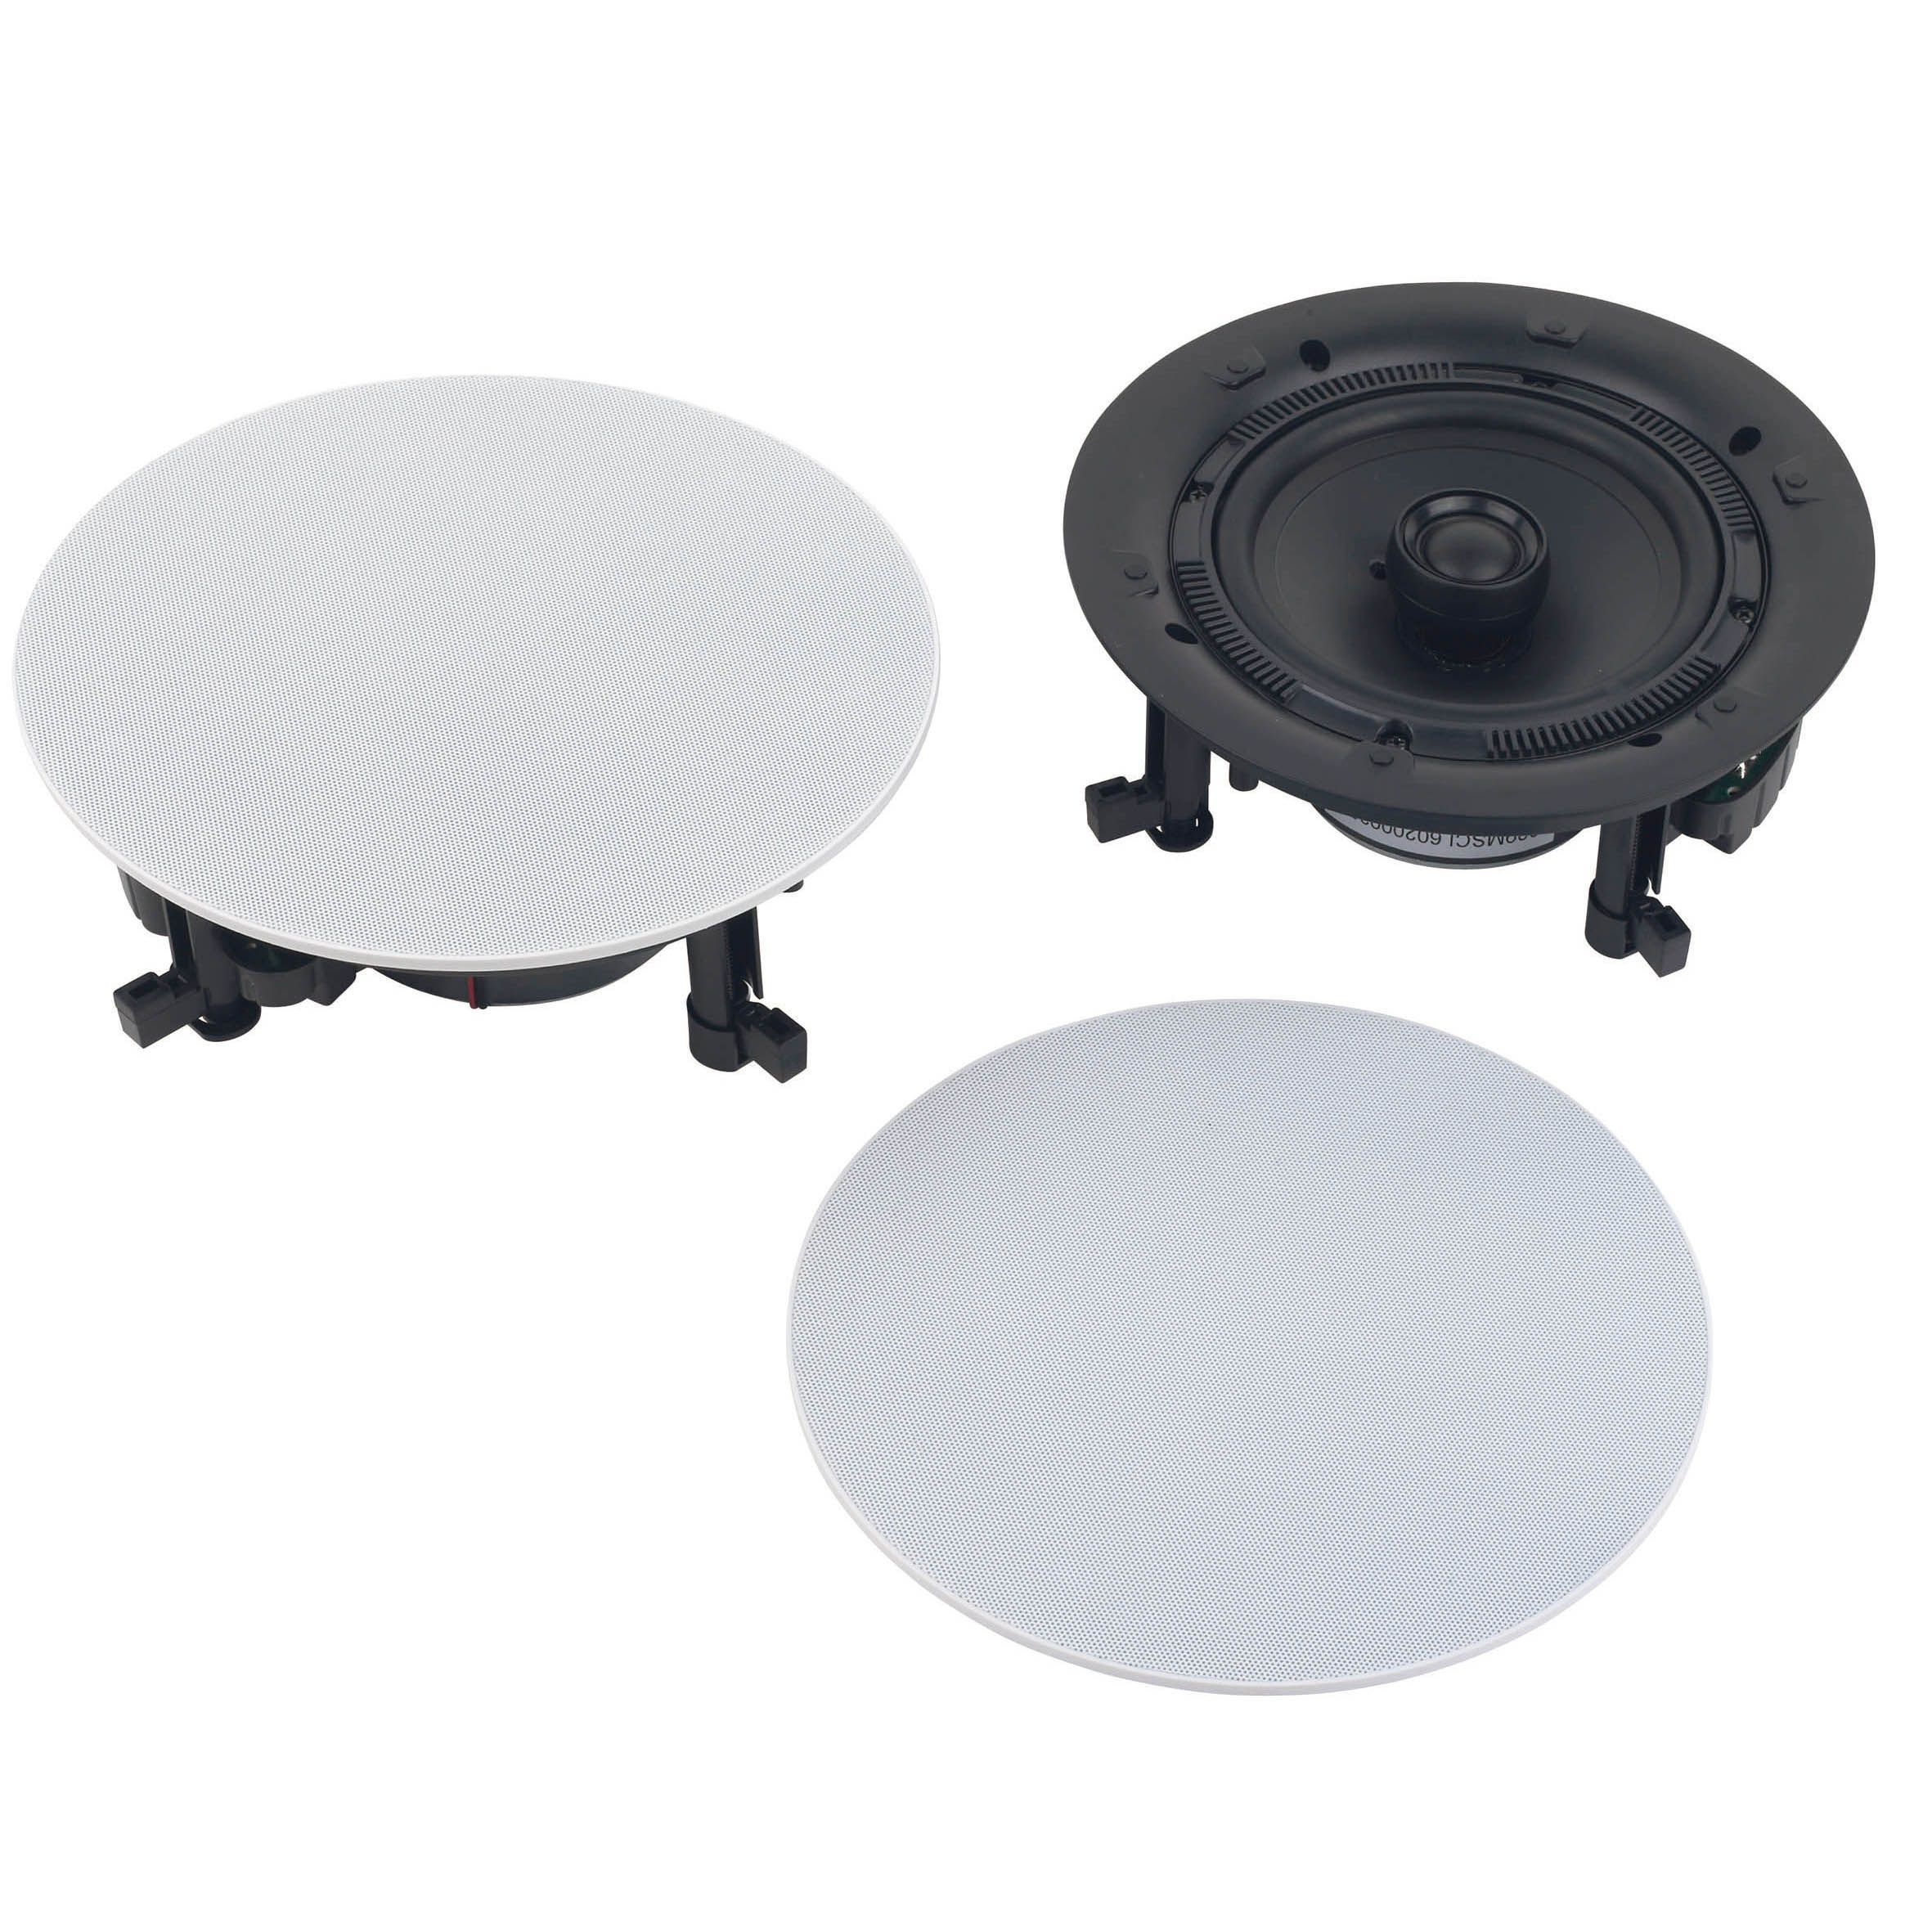 Fusion ceiling speakers departments diy at b q for Cheap decking boards b q